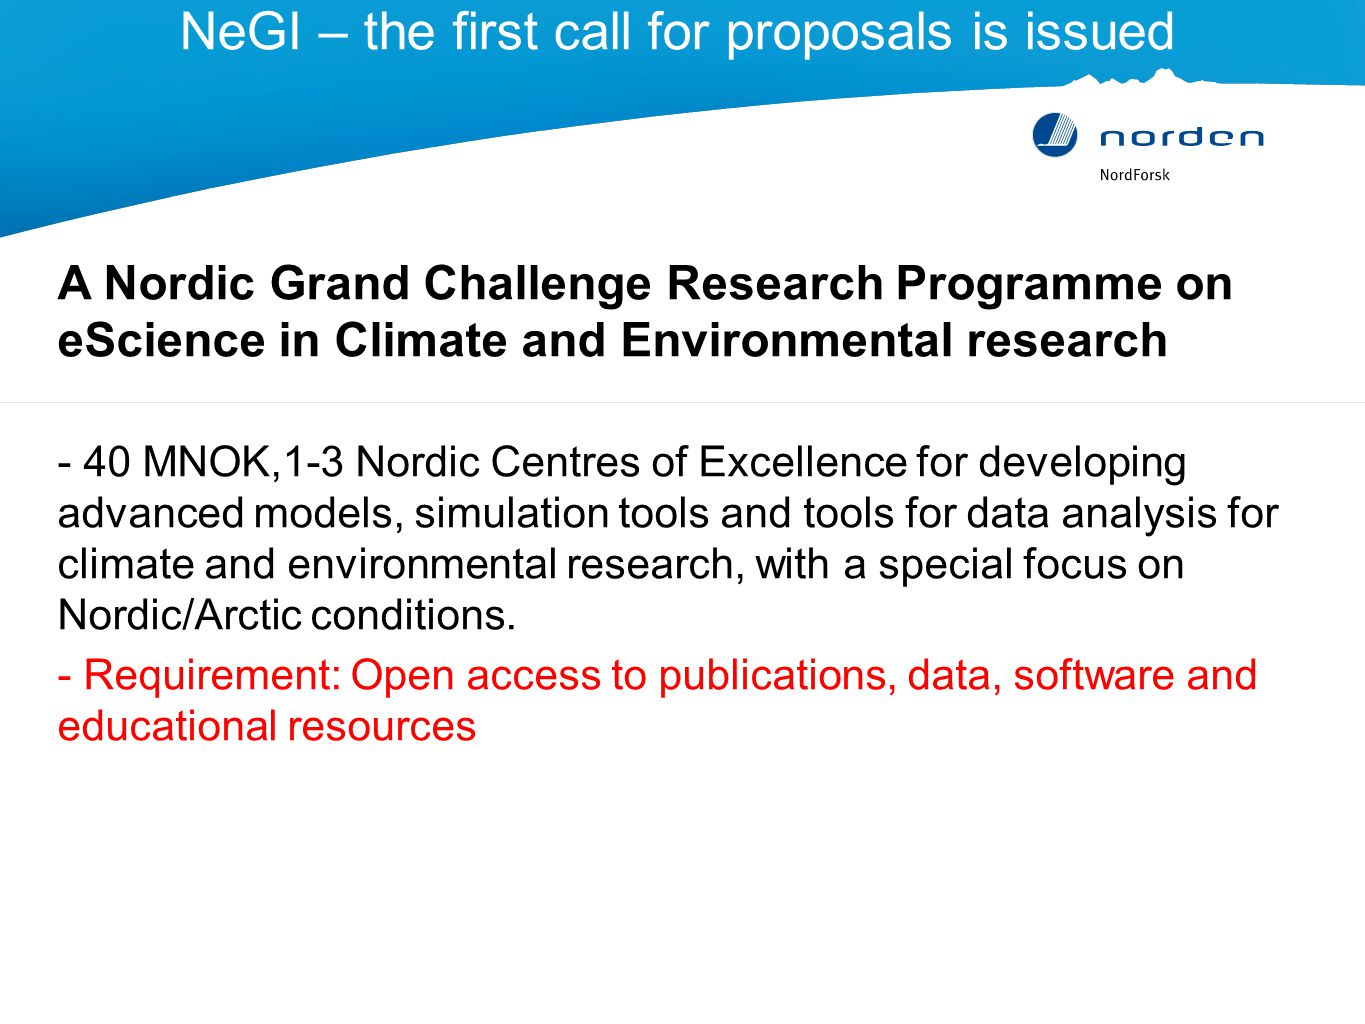 NeGI – the first call for proposals is issued A Nordic Grand Challenge Research Programme on eScience in Climate and Environmental research - 40 MNOK,1-3 Nordic Centres of Excellence for developing advanced models, simulation tools and tools for data analysis for climate and environmental research, with a special focus on Nordic/Arctic conditions.